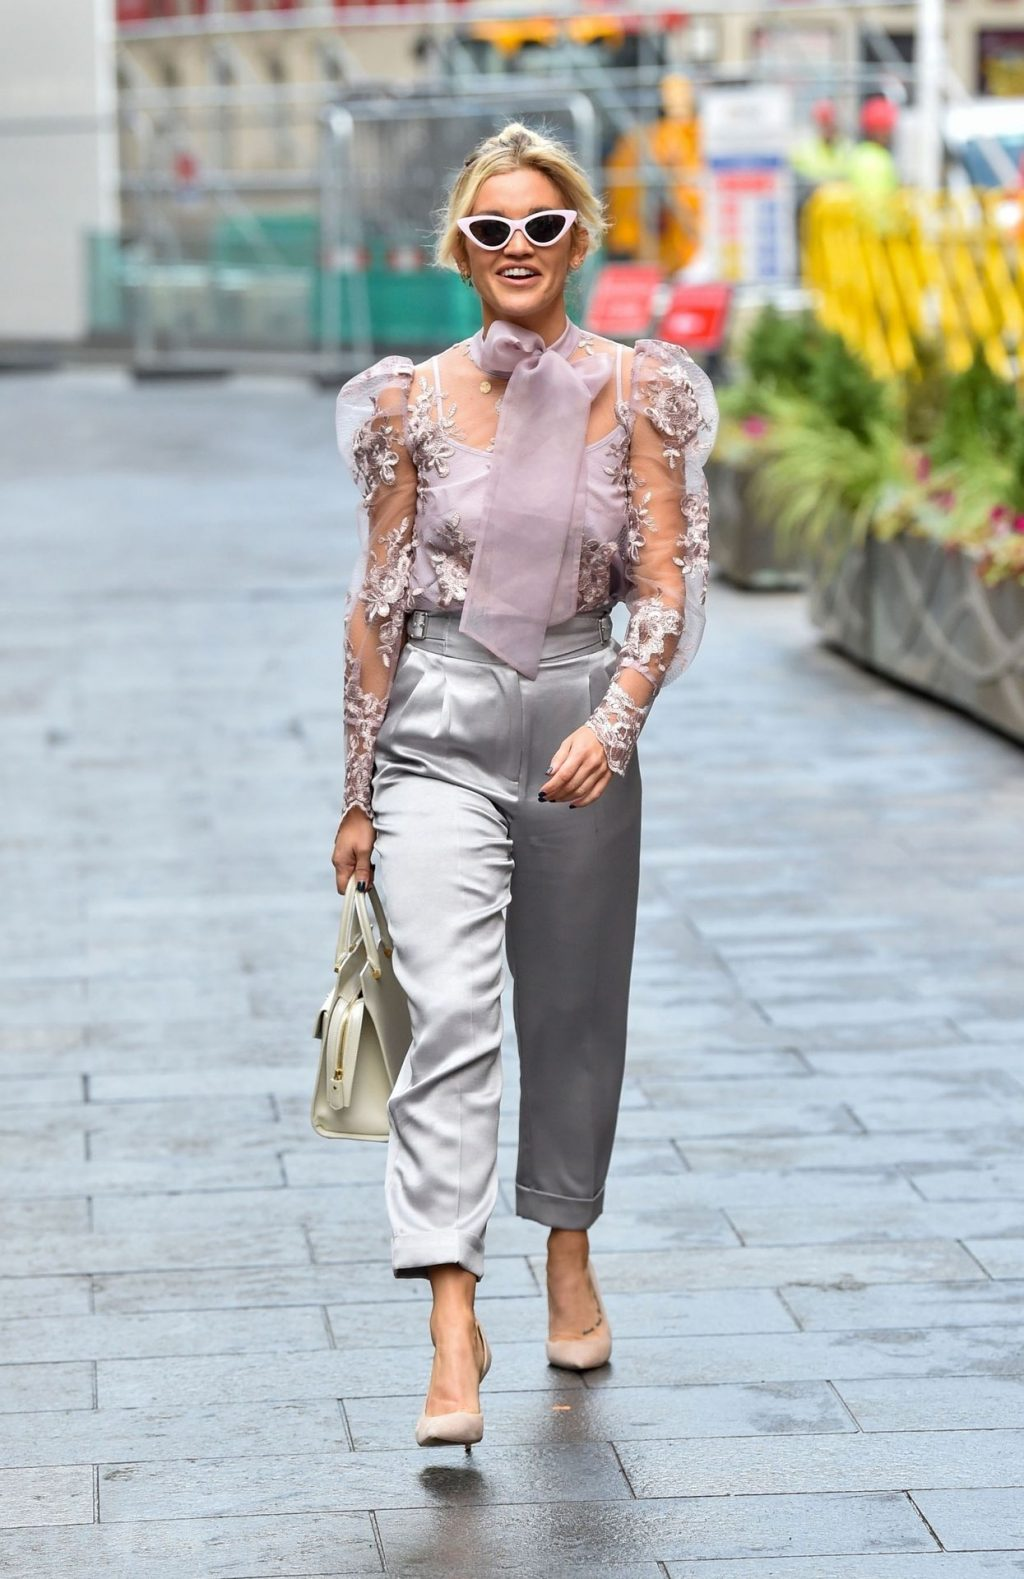 Ashley Roberts Shows Her Pokies in London (22 Photos)